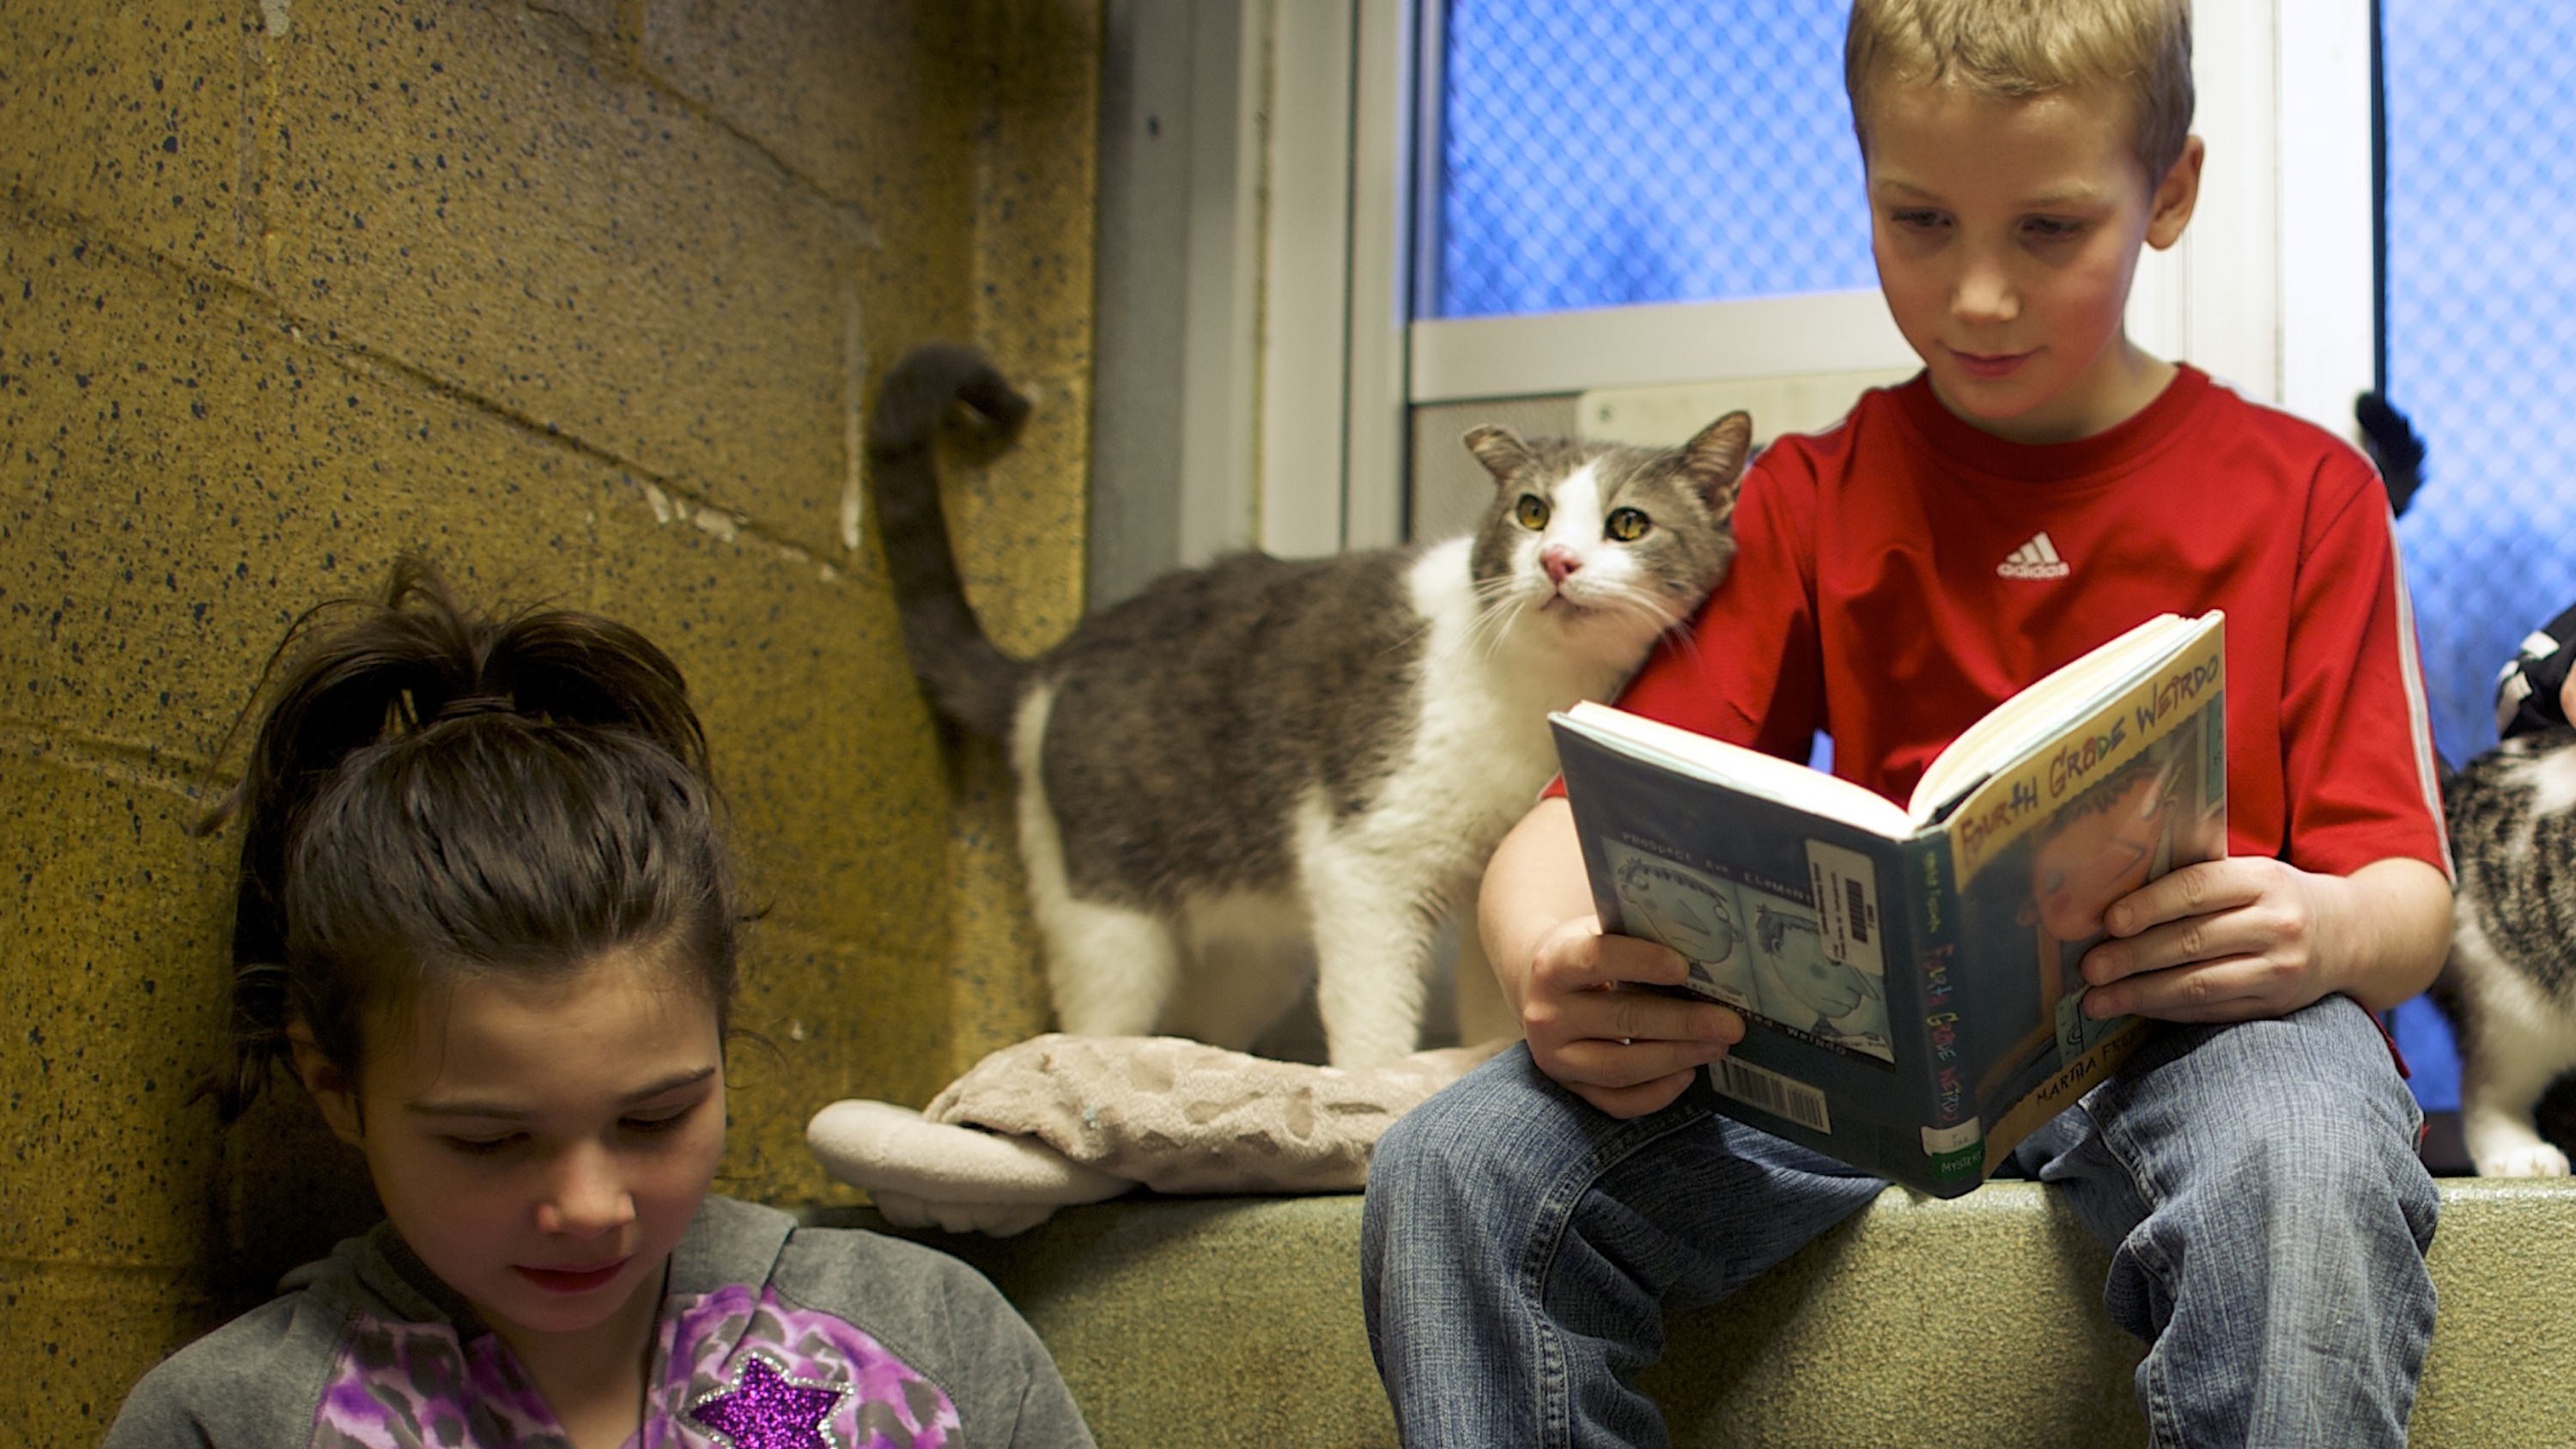 """Kaitlyn Karkoska, Seth Wiggins, and Ethan Wiggins (L-R) read to """"Stewart"""" and """"Tyler,"""" cats up for adoption, as part of """"The Book Buddies Program"""" at the Animal Rescue League of Berks County in Birdsboro, Pennsylvania February 11, 2014. Children in grades 1-8 read to the cats as a way to improve their reading skills and gain confidence. The shelter animals can be a non-evaluative presence that can provide support and comfort to participants without judging them. Students showed sustained focus and maintained a higher state of awareness, as well as improved attitudes toward school, according to researchers at Tufts University. Photo taken February 11, 2014."""